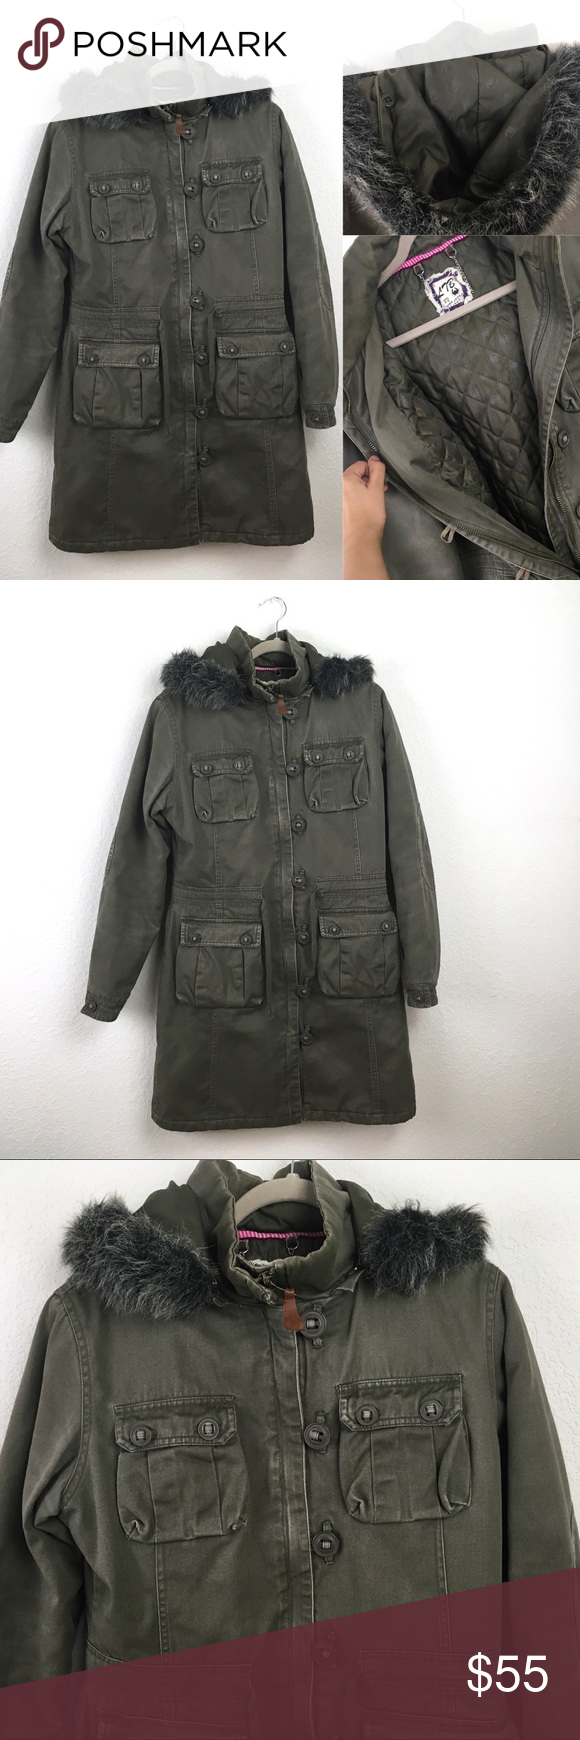 91a81e9a31 JUST IN💙Long Green Knee Length Winter Hooded Coat Long olive green utility  jacket.